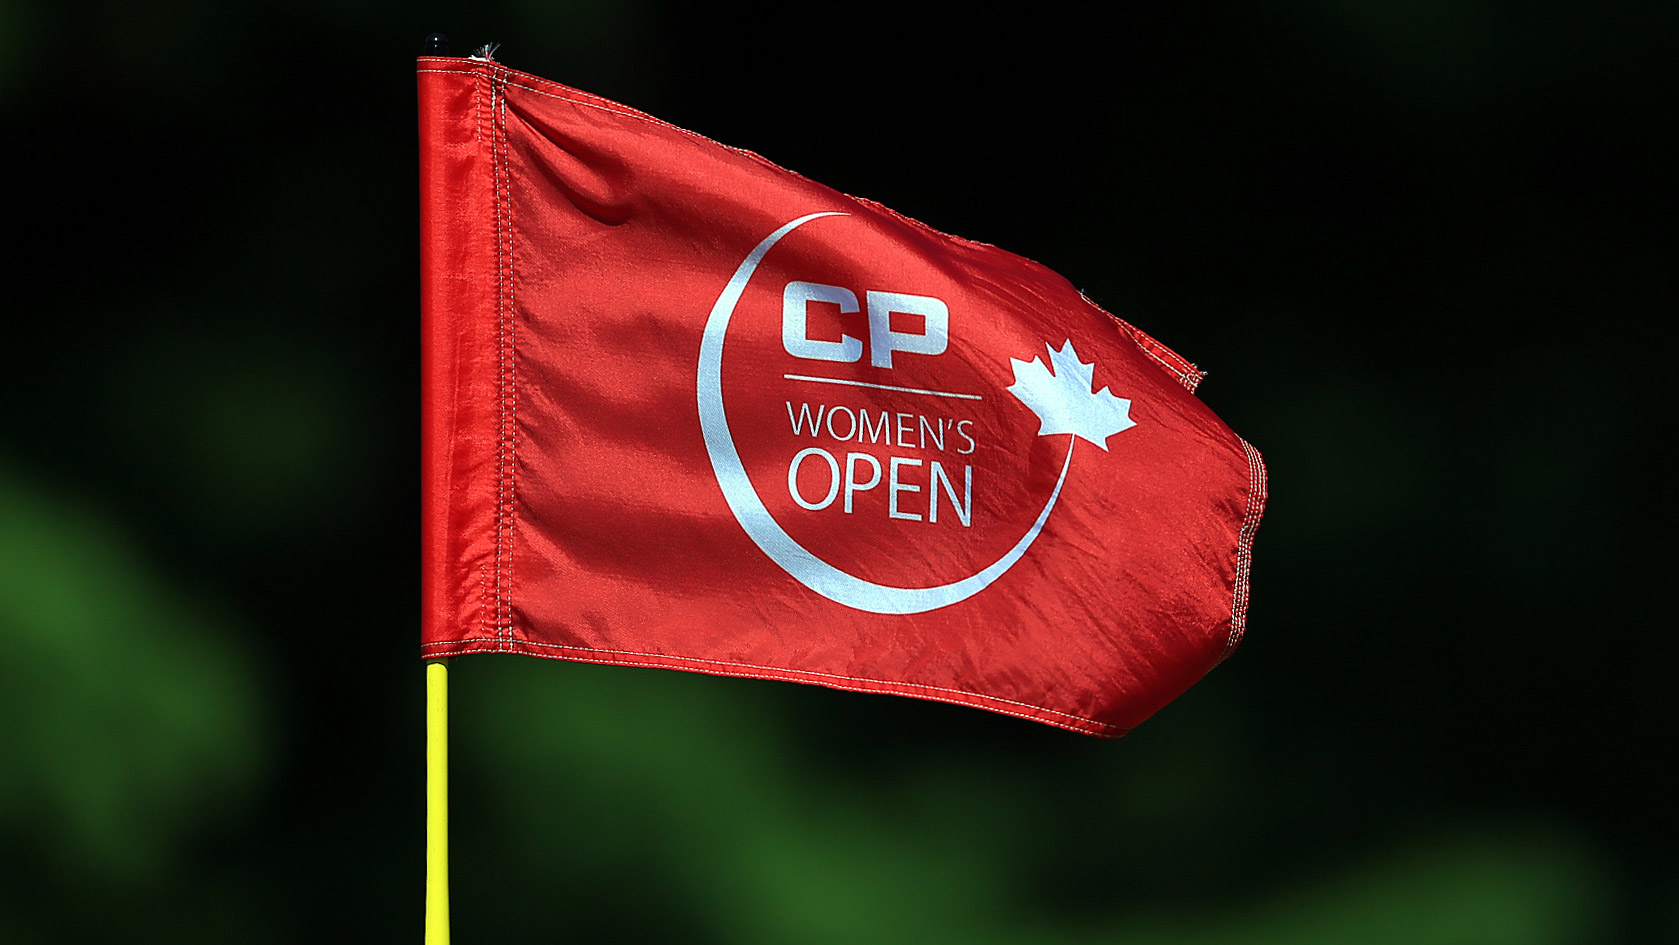 Local golfers assisting as caddies at CP Women's Open